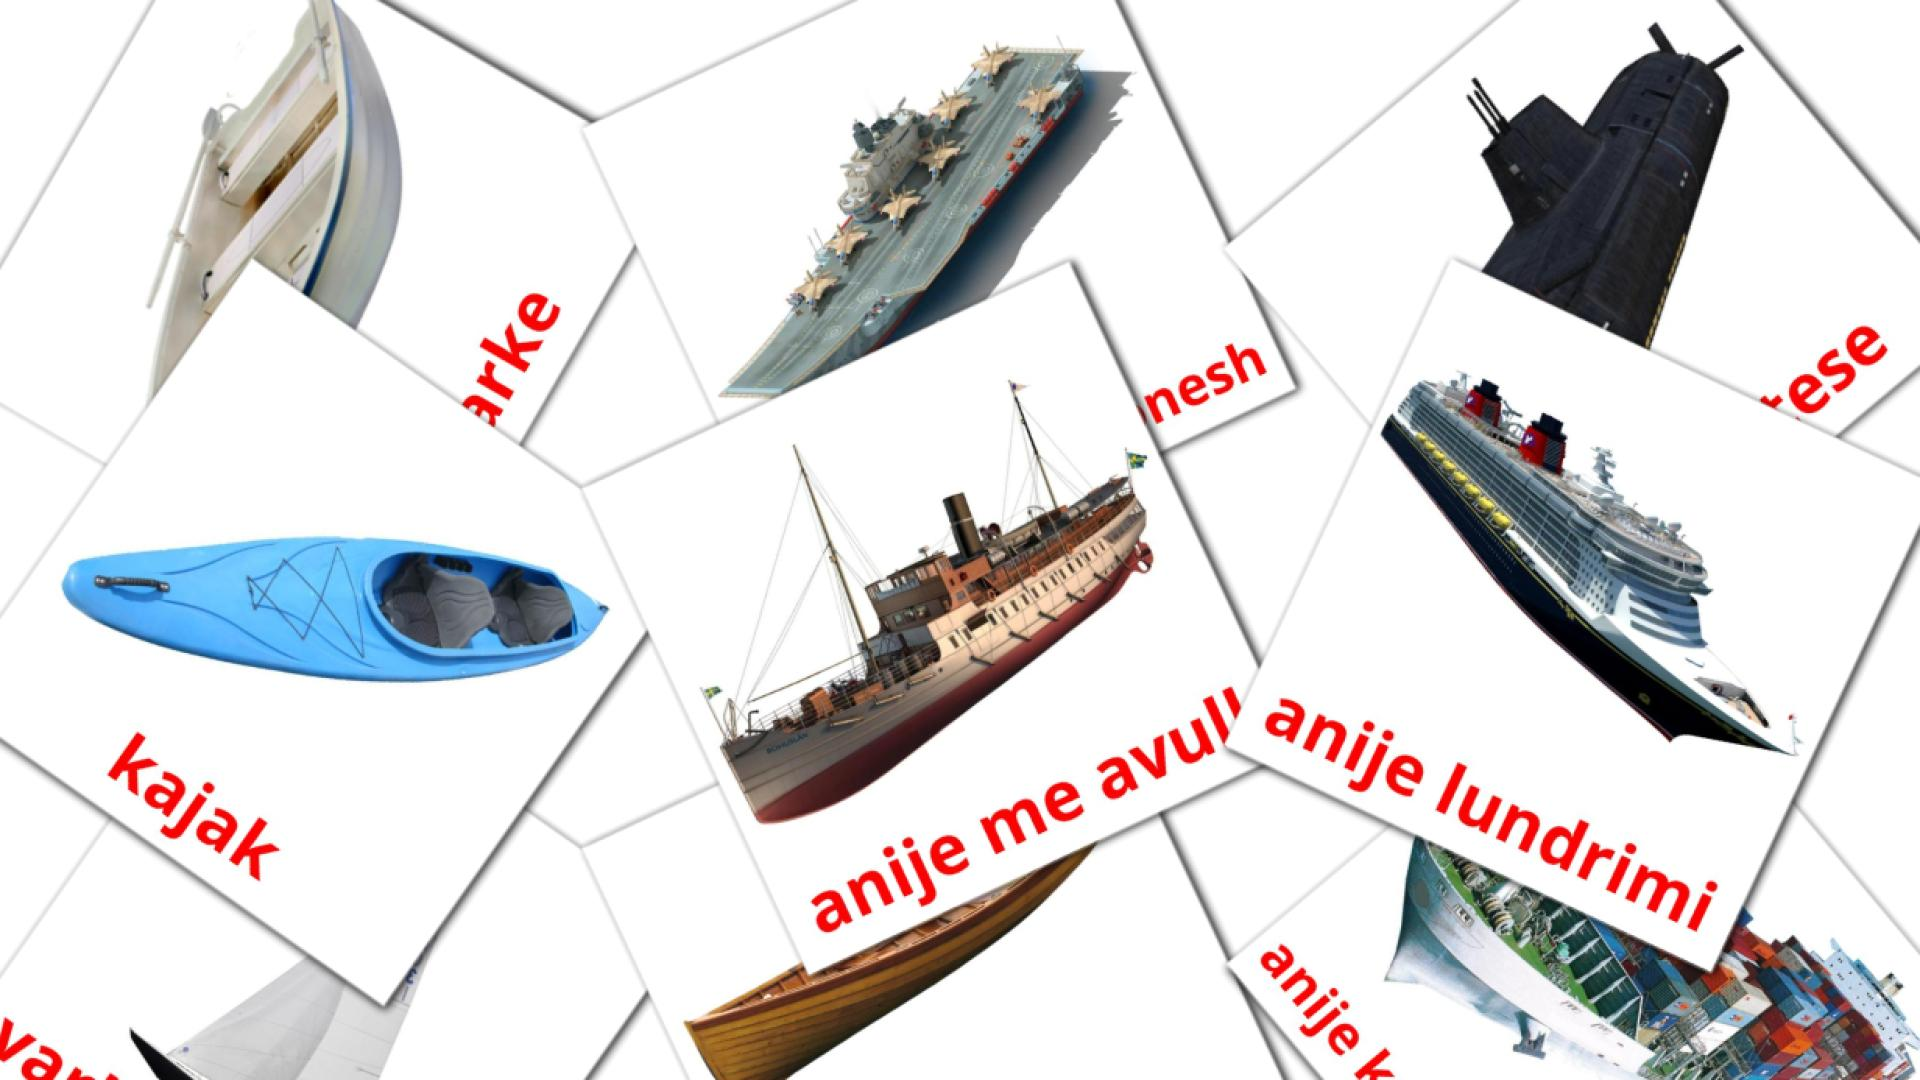 Water transport flashcards